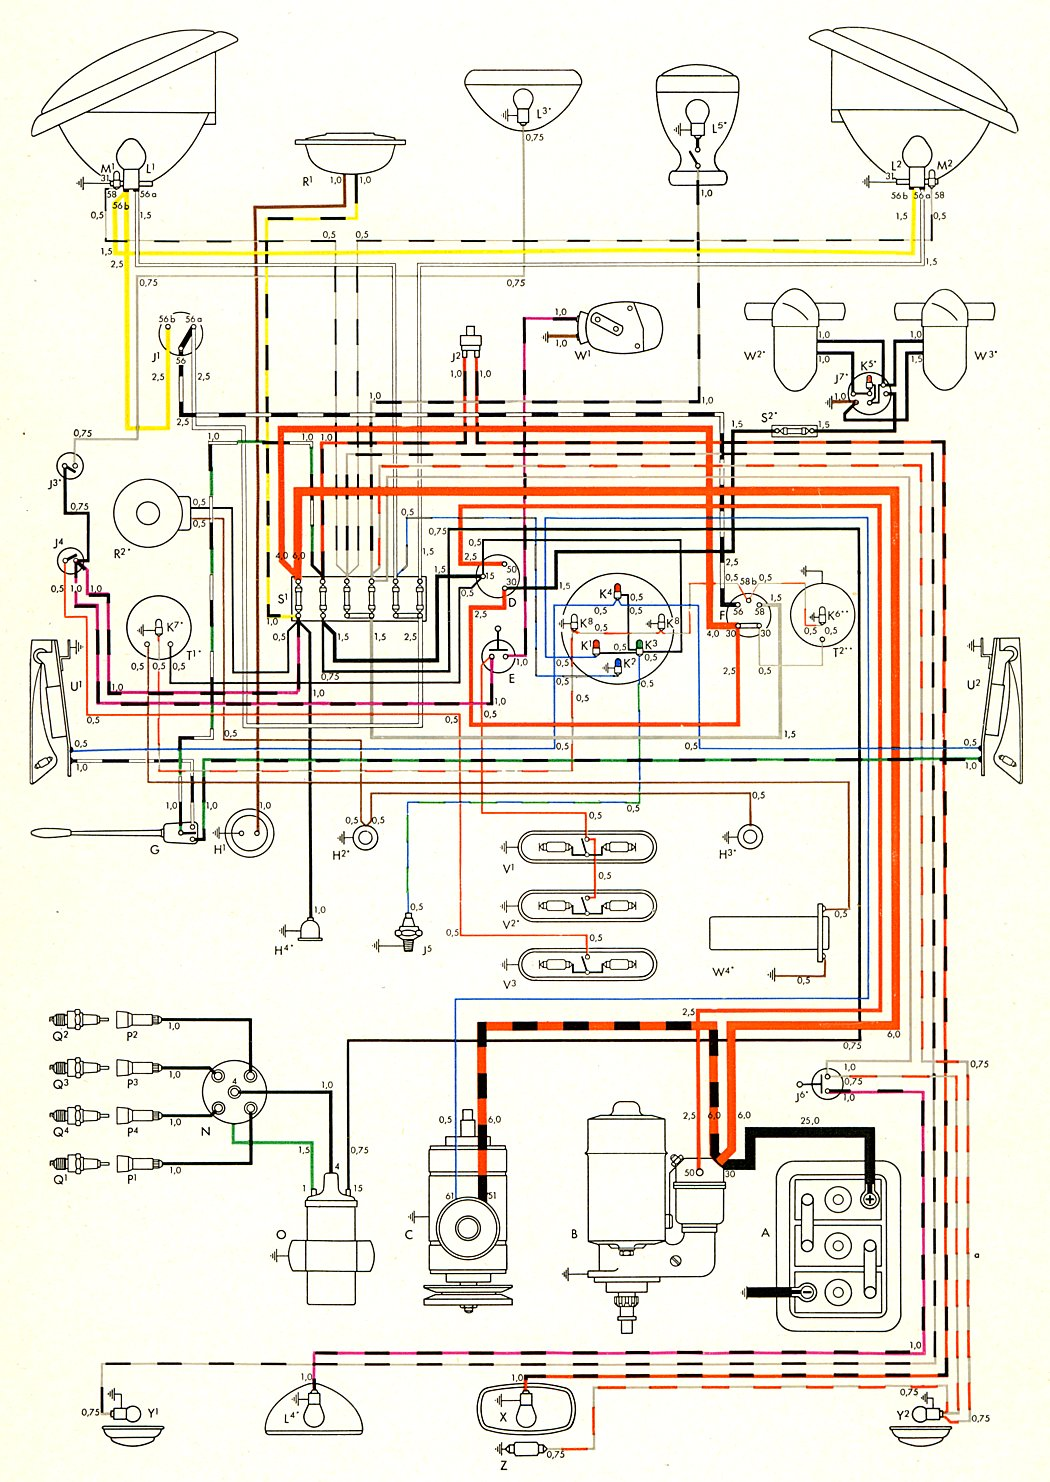 bus_nov57 1957 bus wiring diagram thegoldenbug com 1971 vw bus wiring diagram at aneh.co